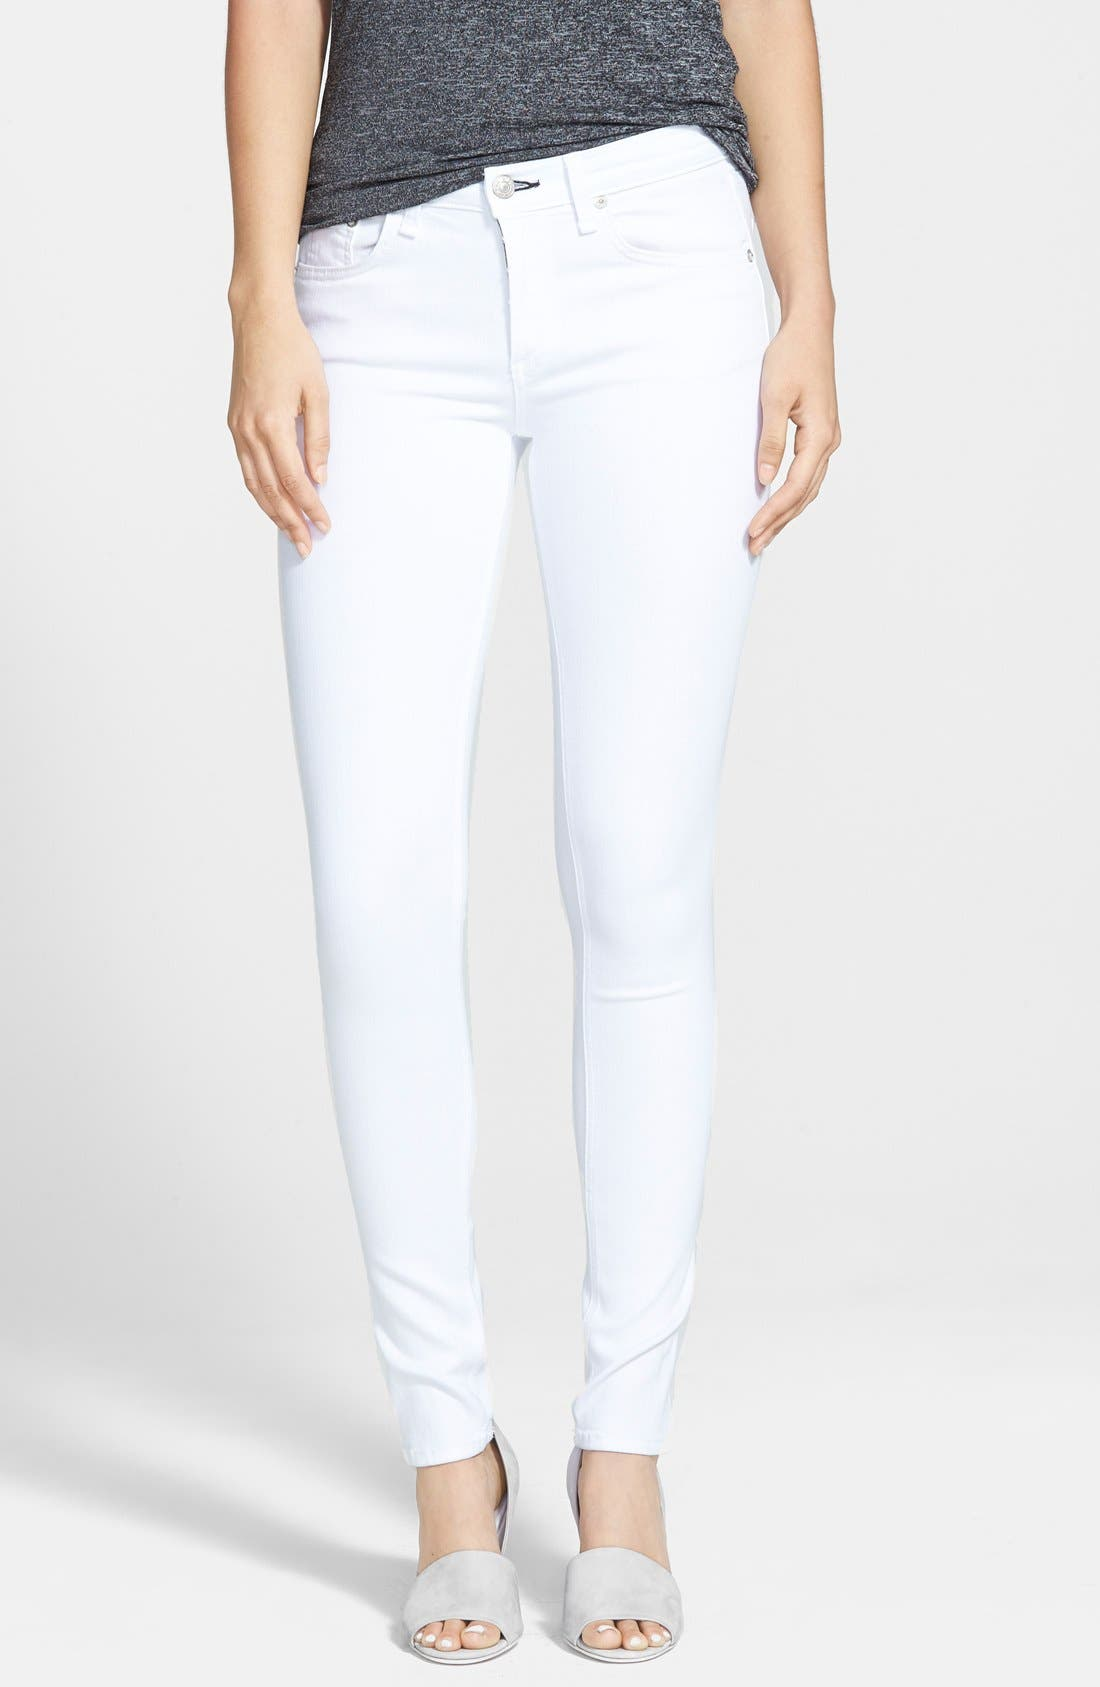 'The Skinny' Jeans,                             Main thumbnail 1, color,                             100